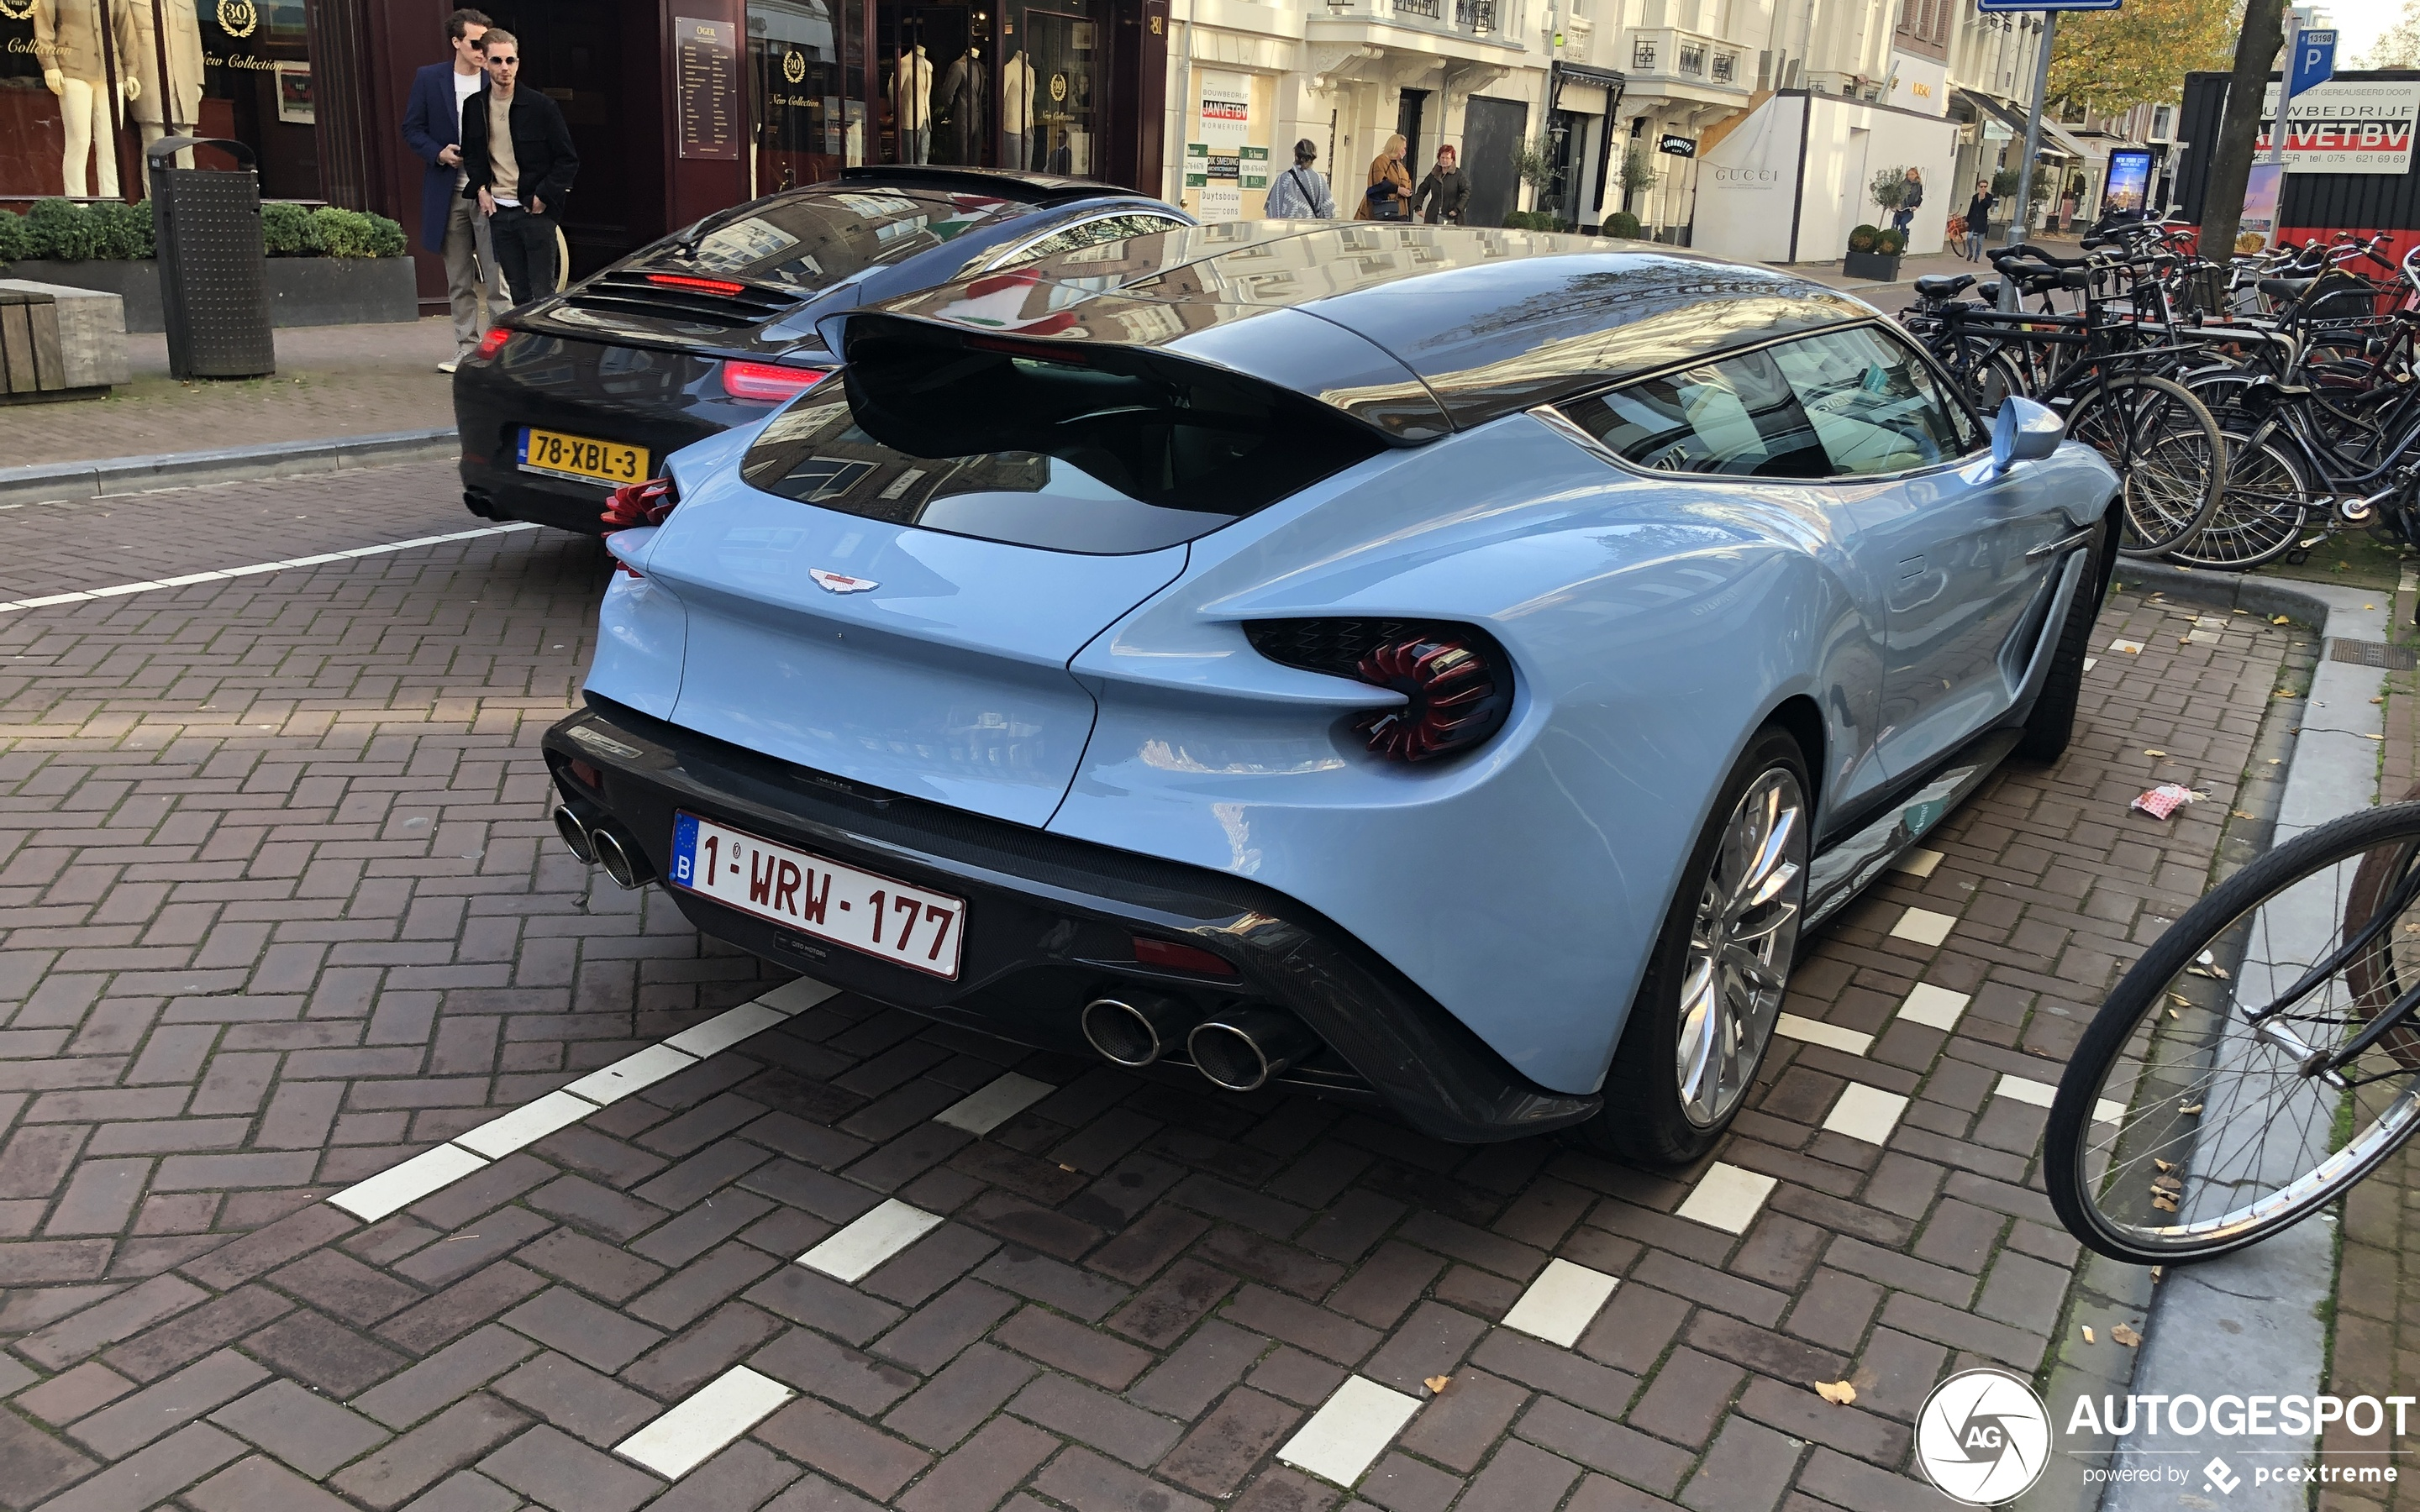 Aston Martin Vanquish Zagato Shooting Brake 7 November 2020 Autogespot